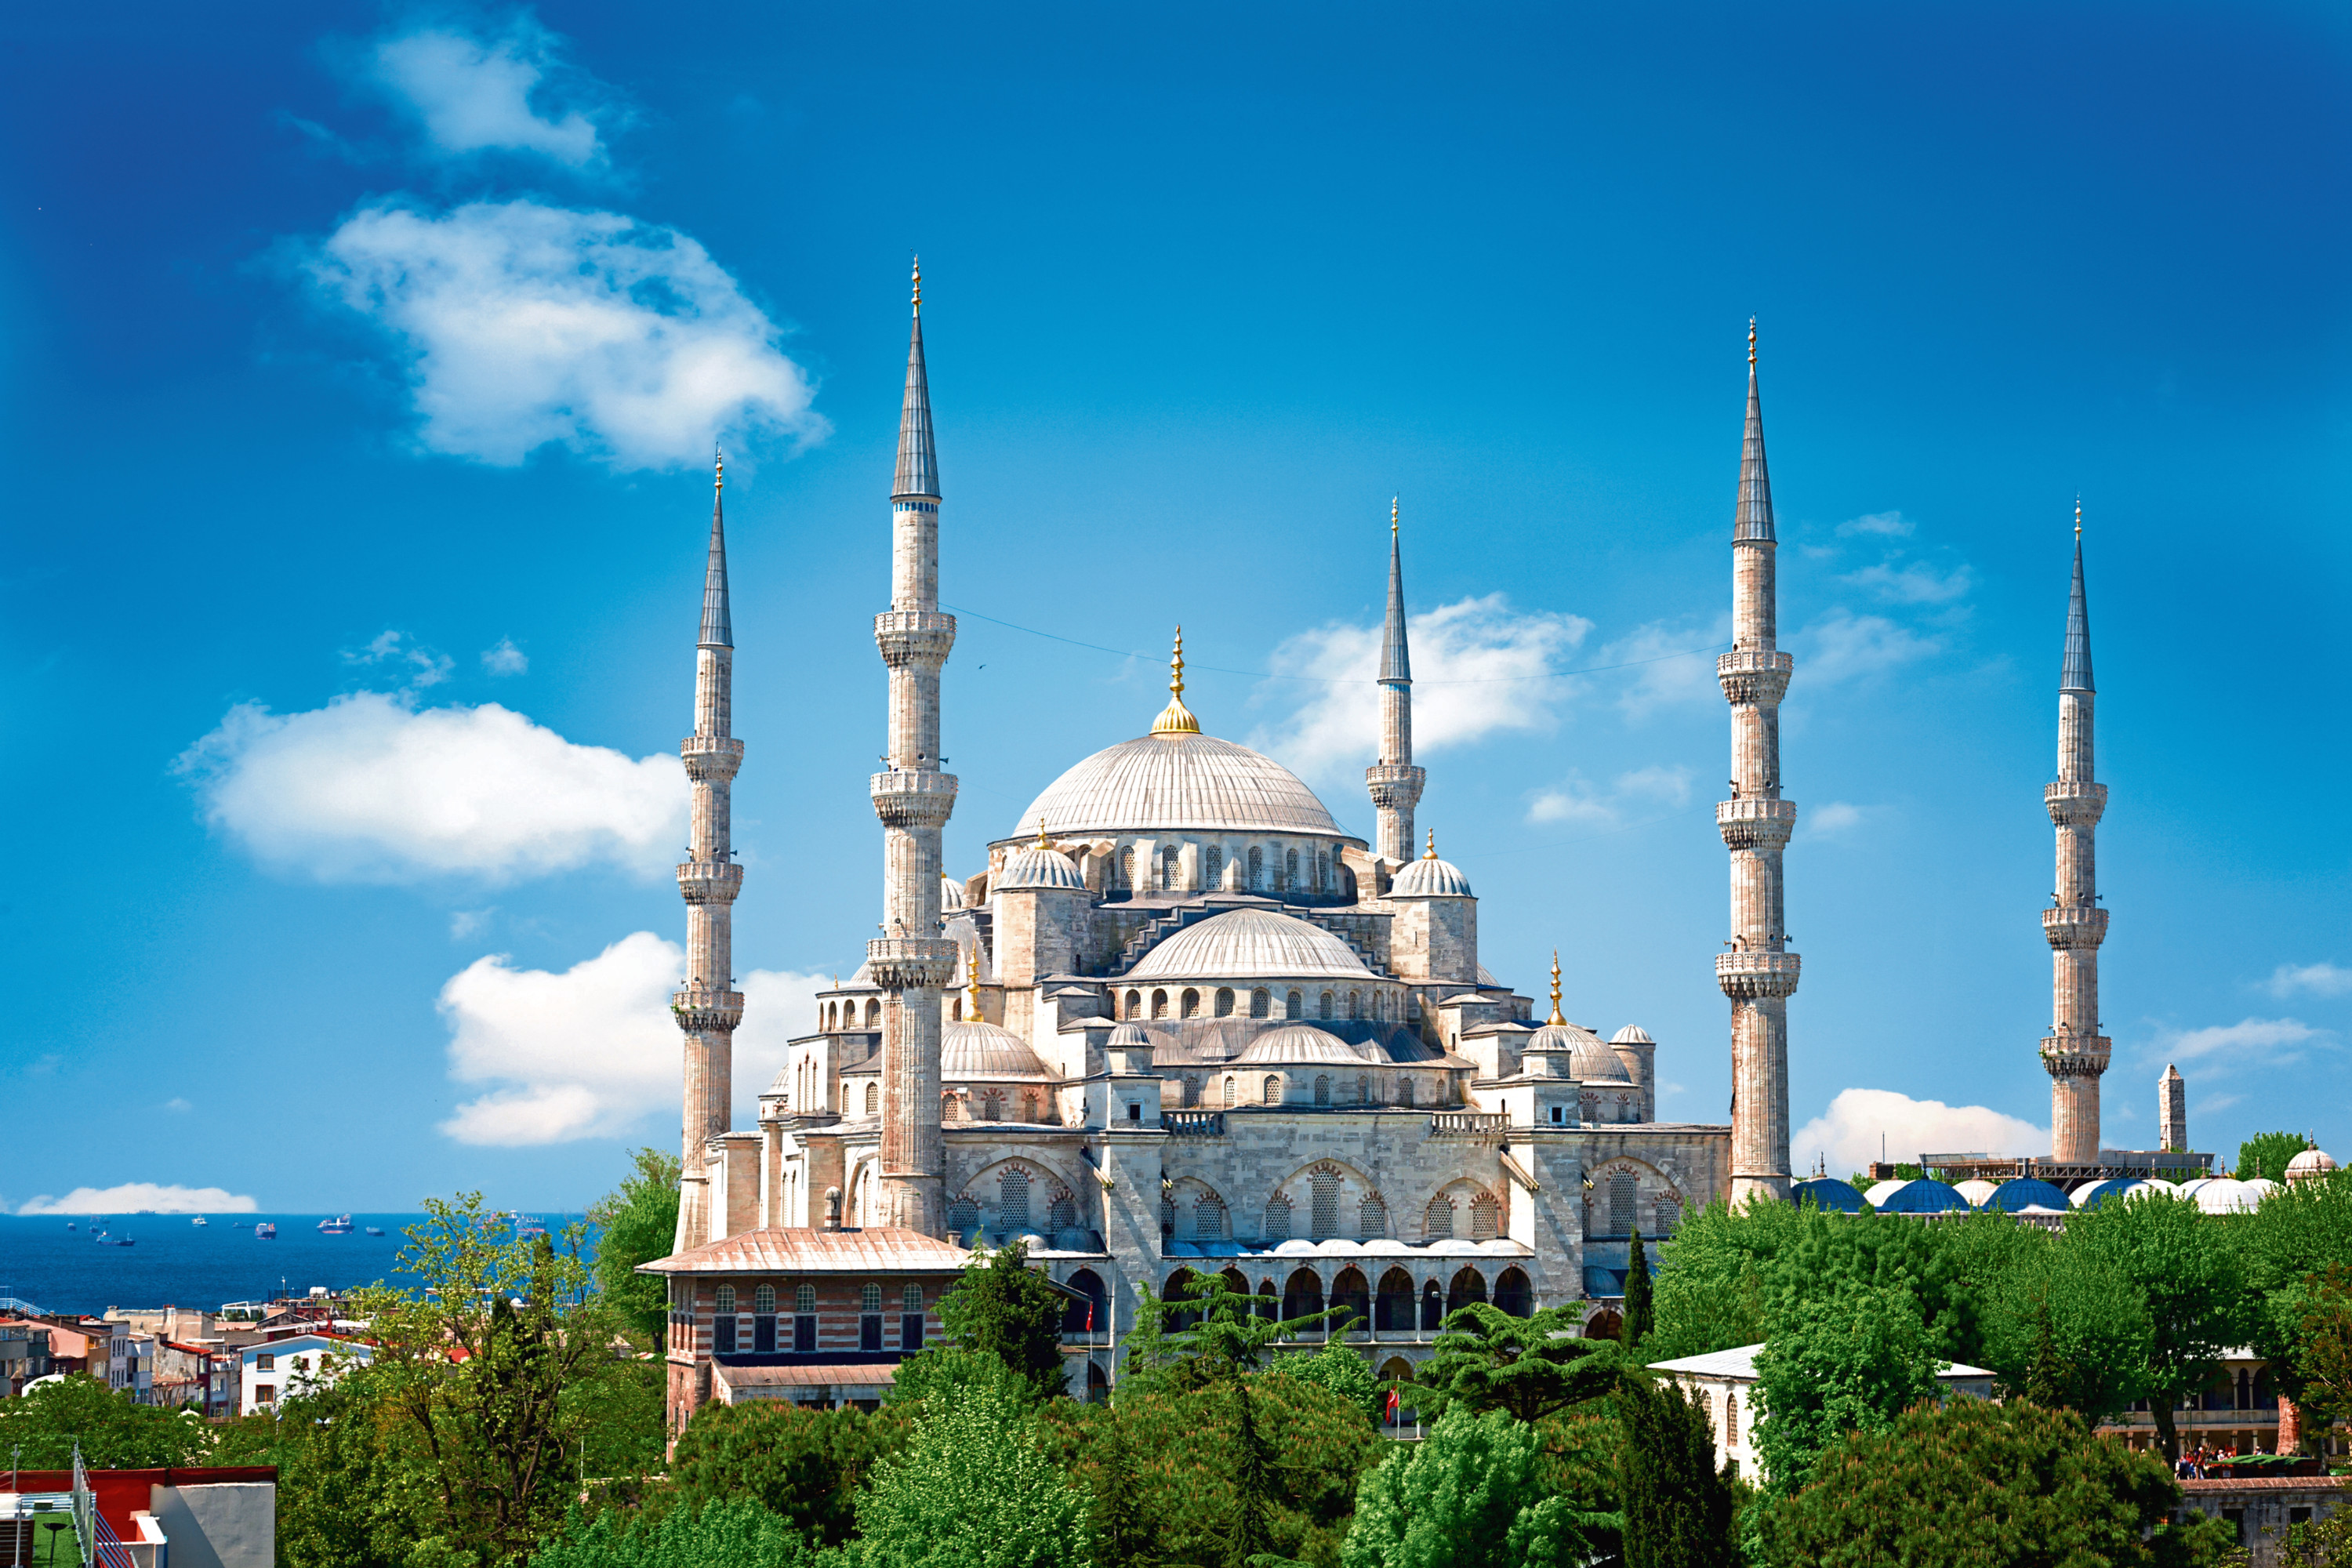 Sultan Ahmed Mosque (Blue mosque) in Istanbul in the sunny summer day, Turkey.